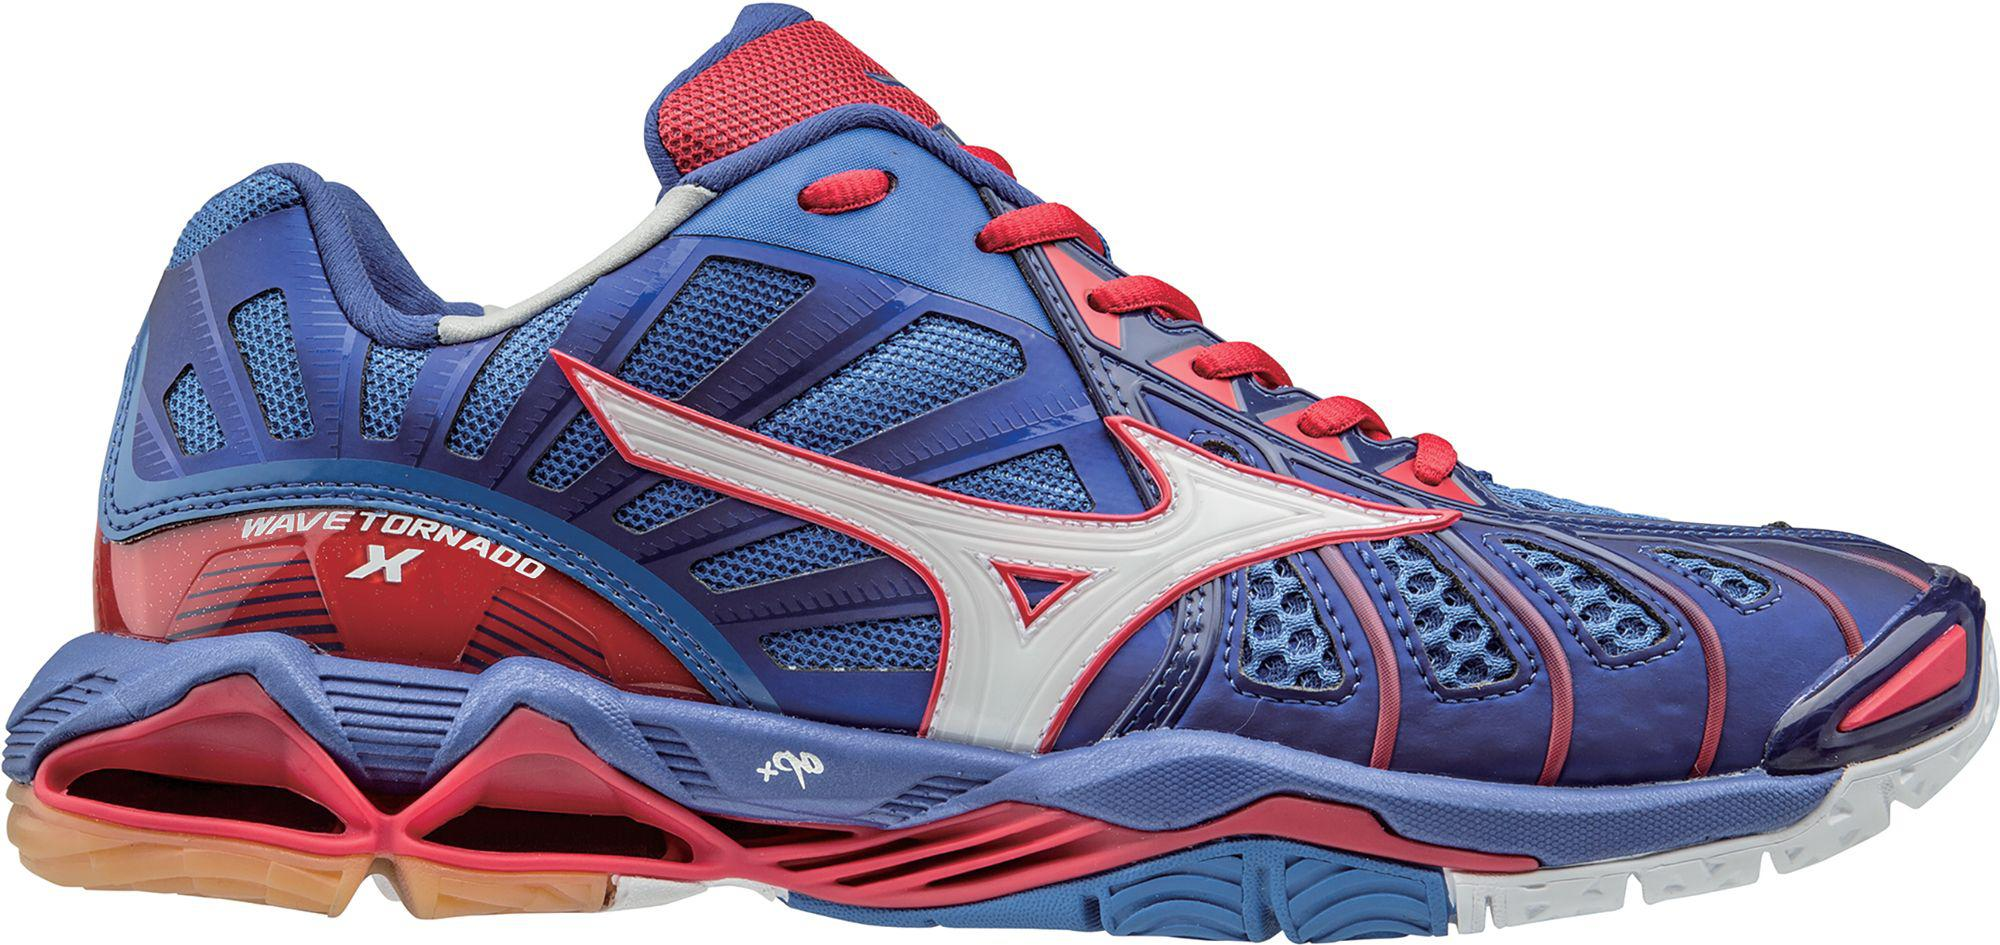 Lyst - Mizuno Wave Tornado X Volleyball Shoes in Blue for Men 573be4e320f